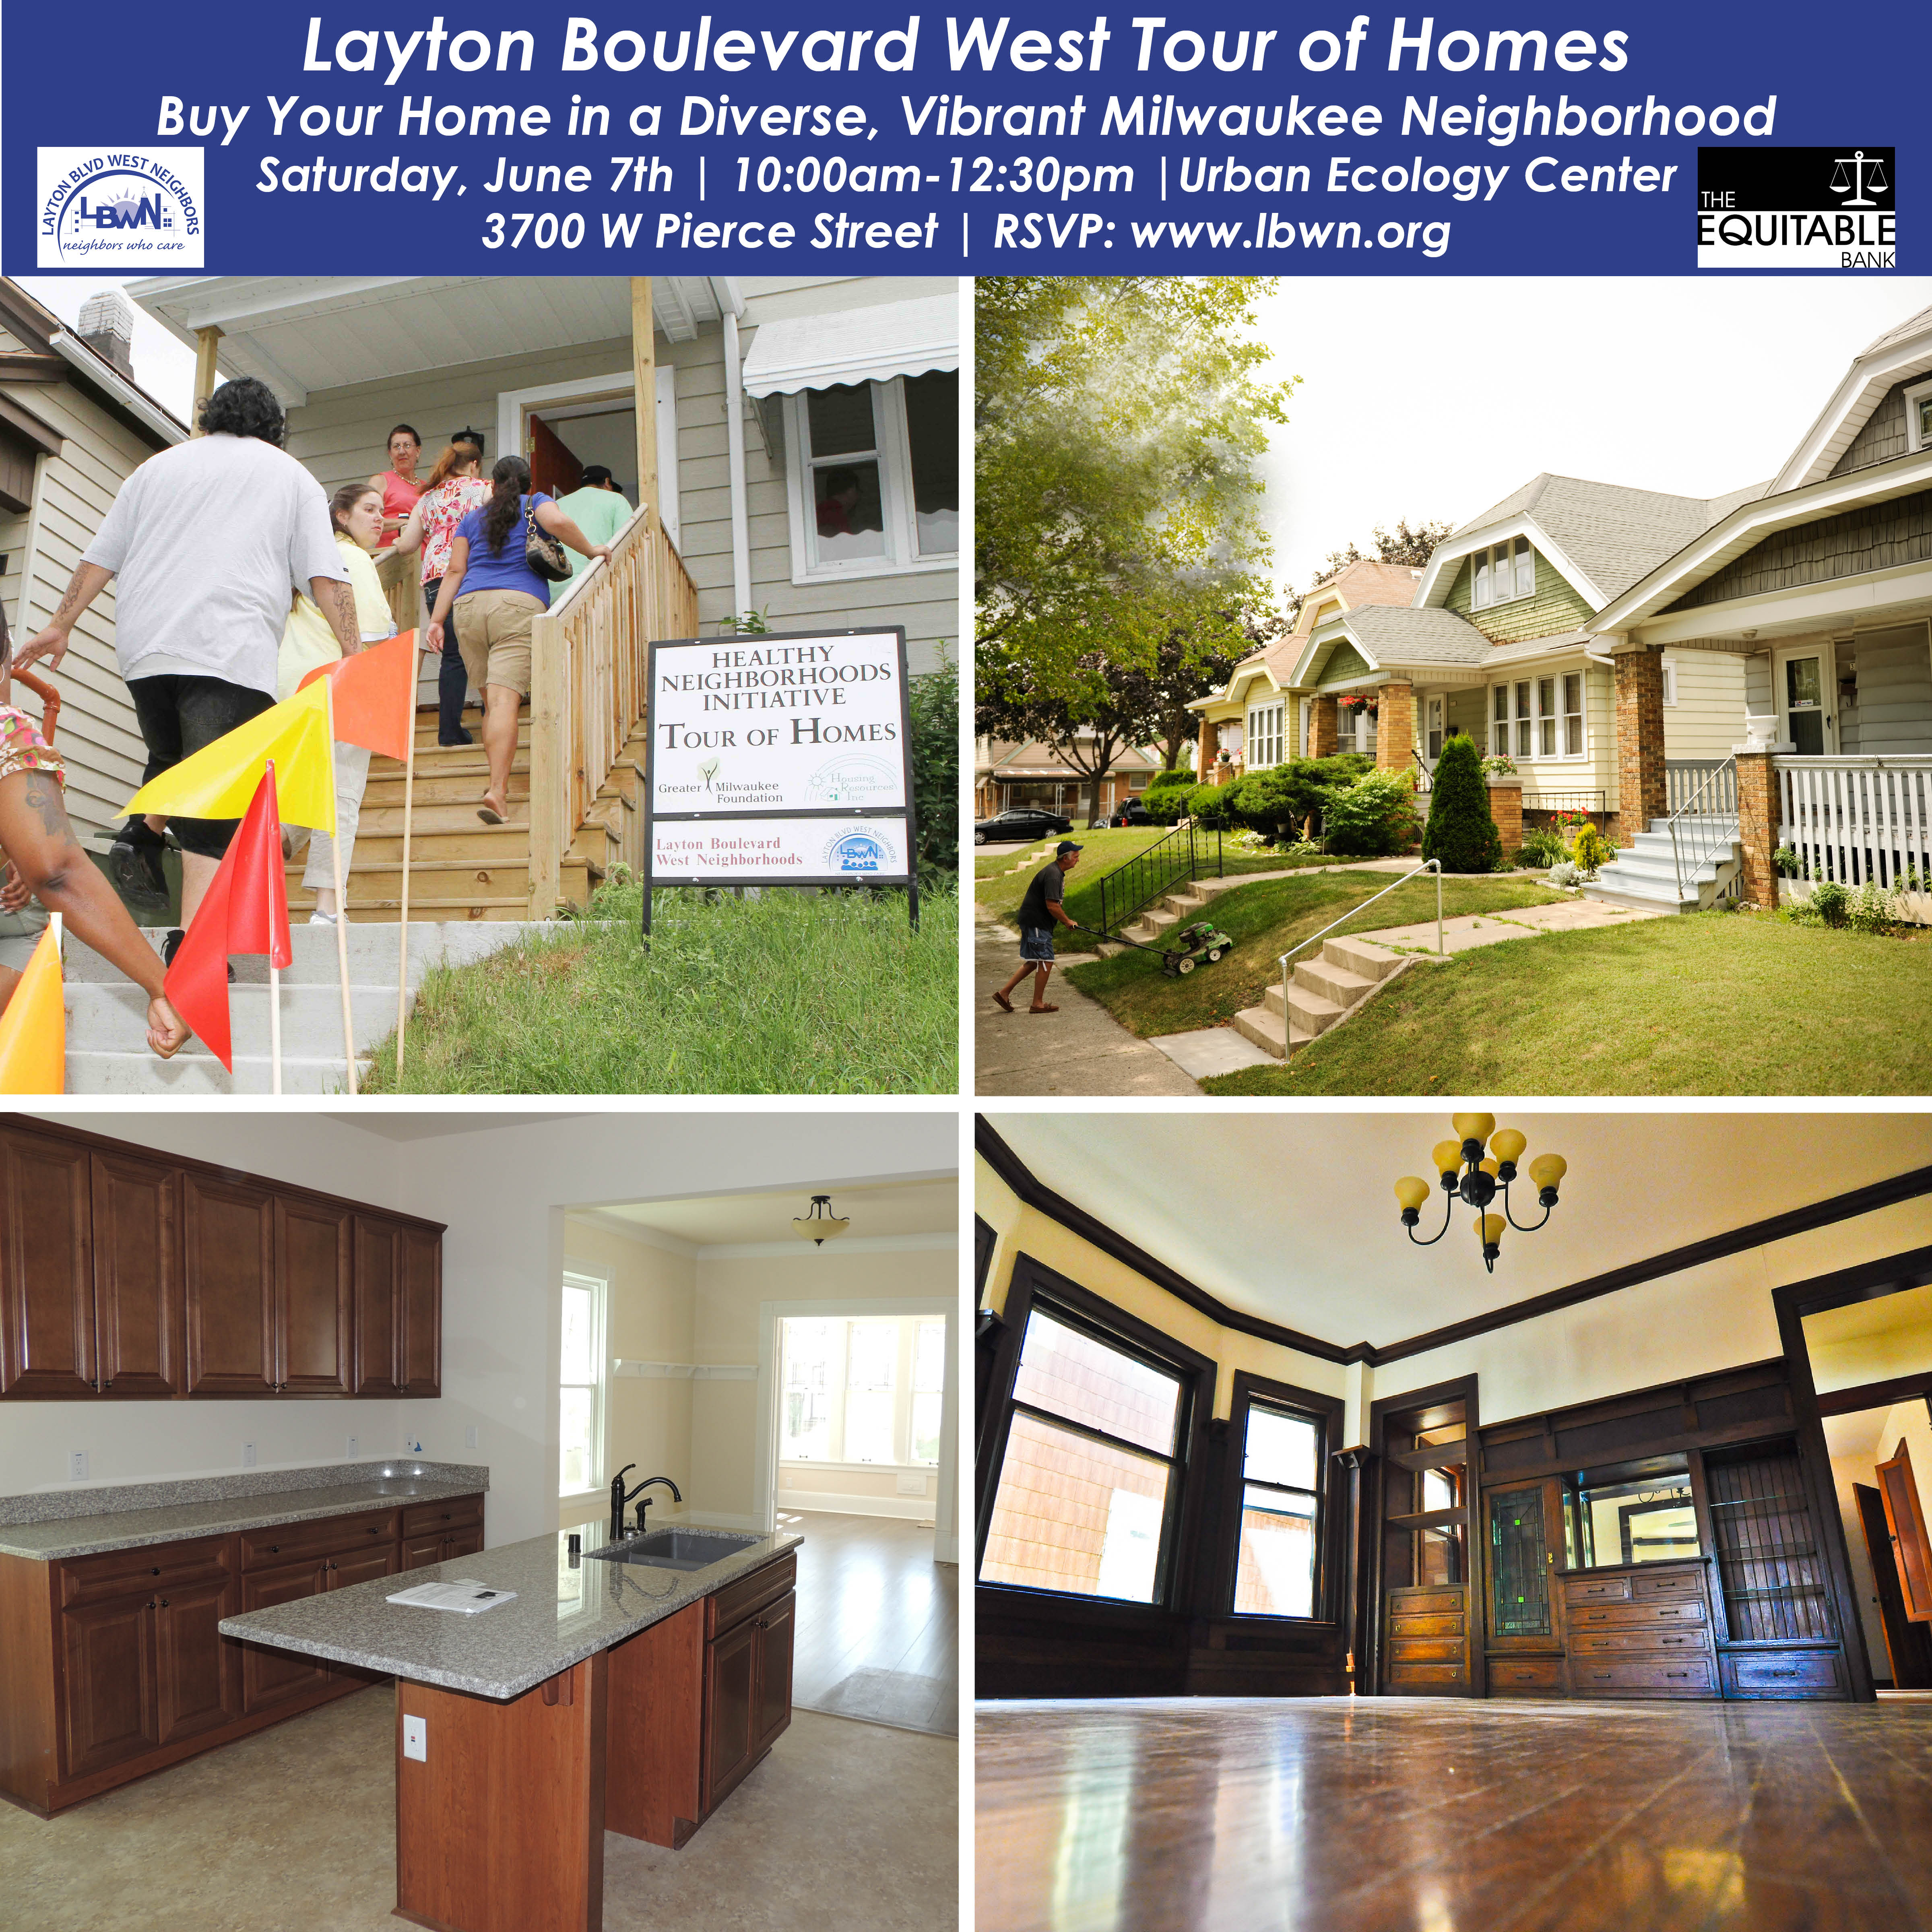 Layton Boulevard West Tour of Homes to Feature Attractive Homes, Homebuying Resources